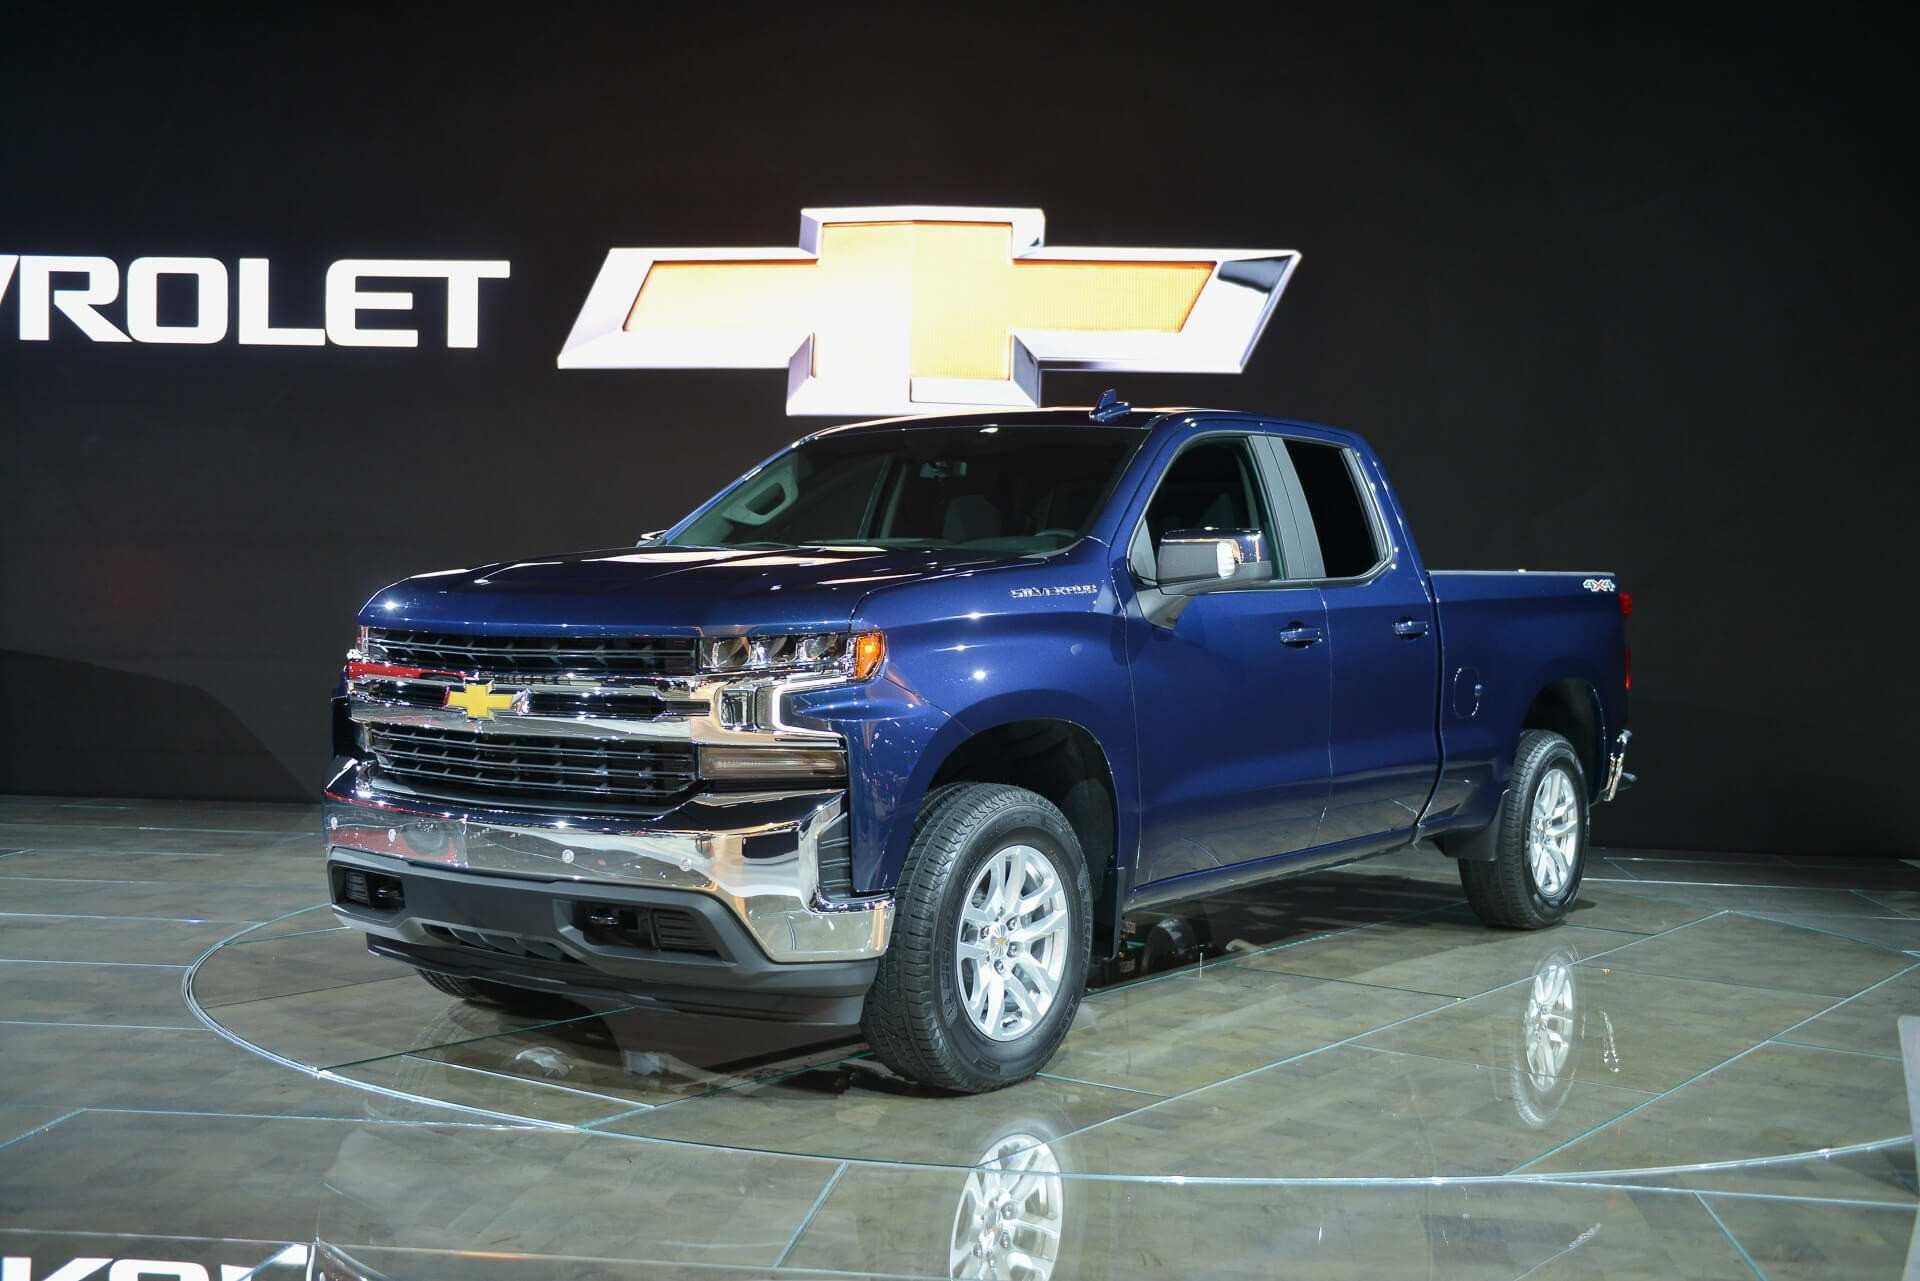 57 All New 2020 Chevy Silverado 1500 2500 Price And Release Date